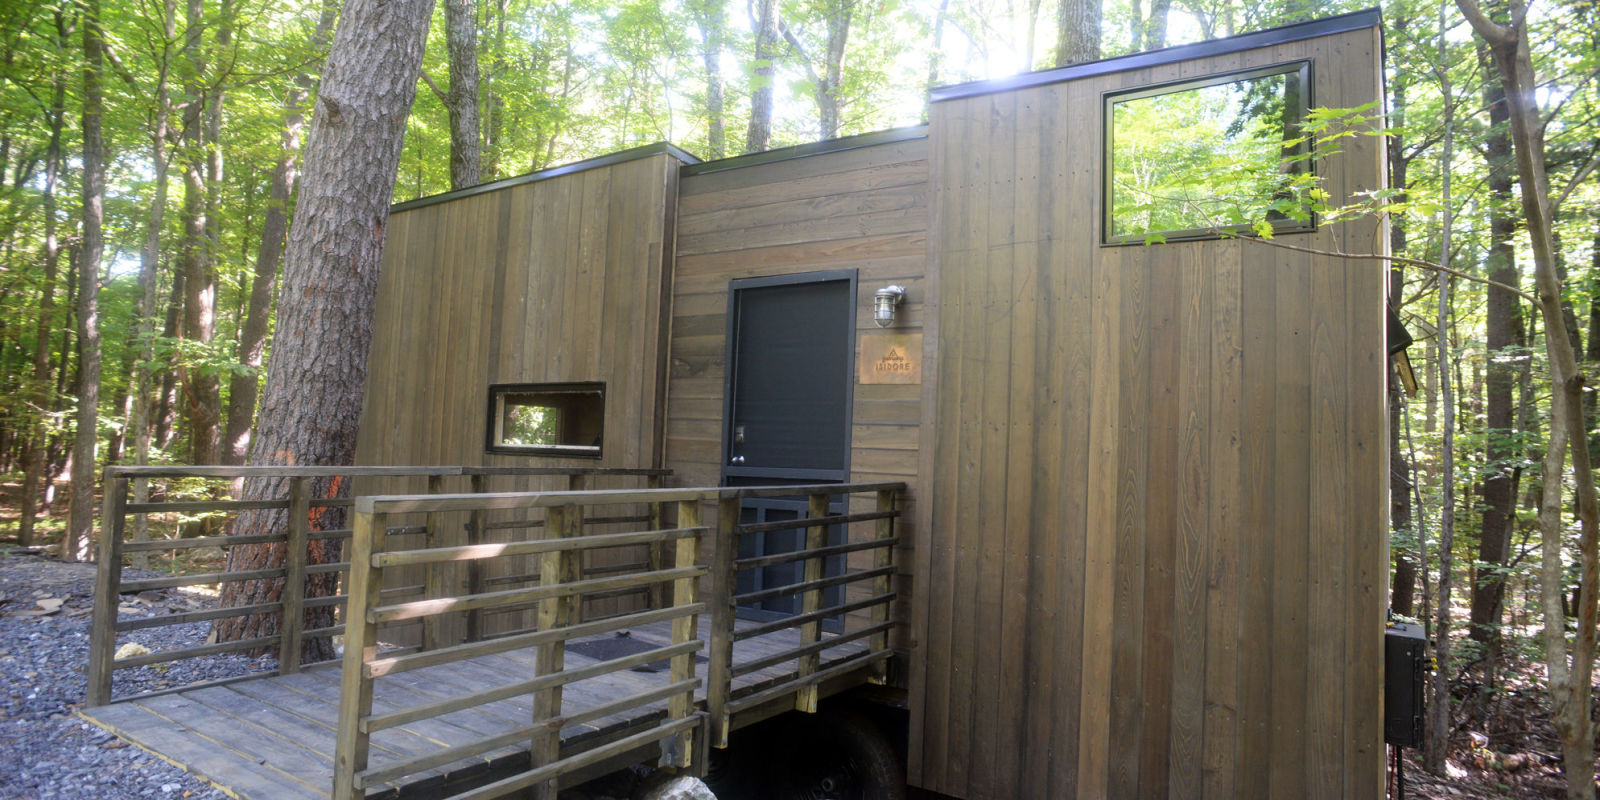 Wheelchair Accessible Tiny Houses: a Big Option for People With